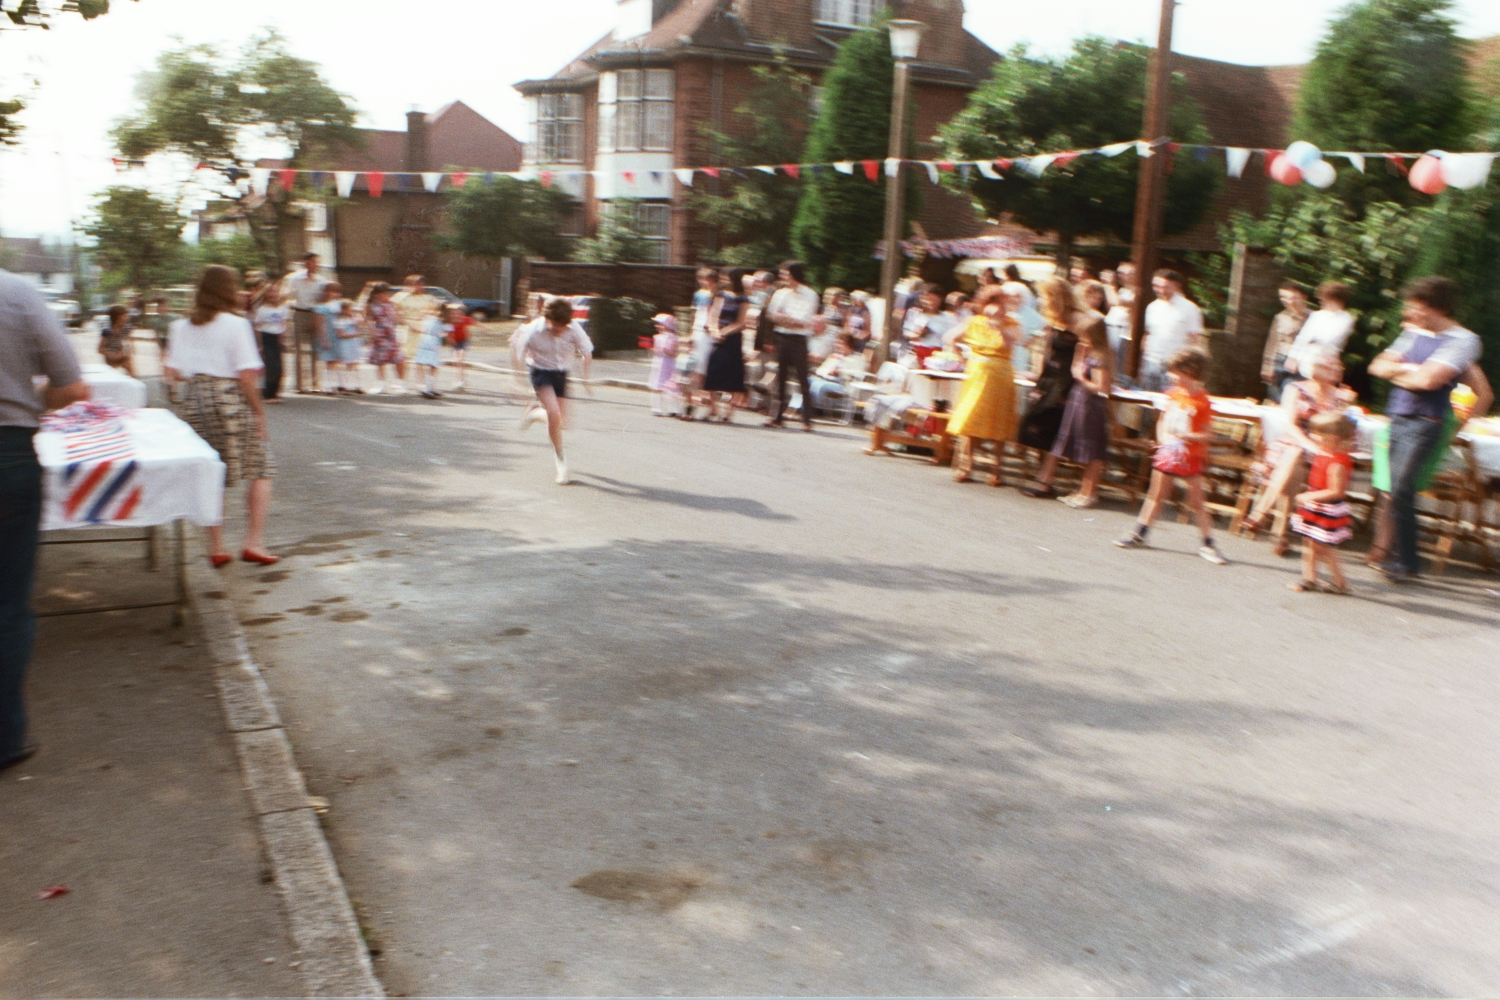 1981 Woodside Road Street Party for Charles & Dianna's Royal Wedding